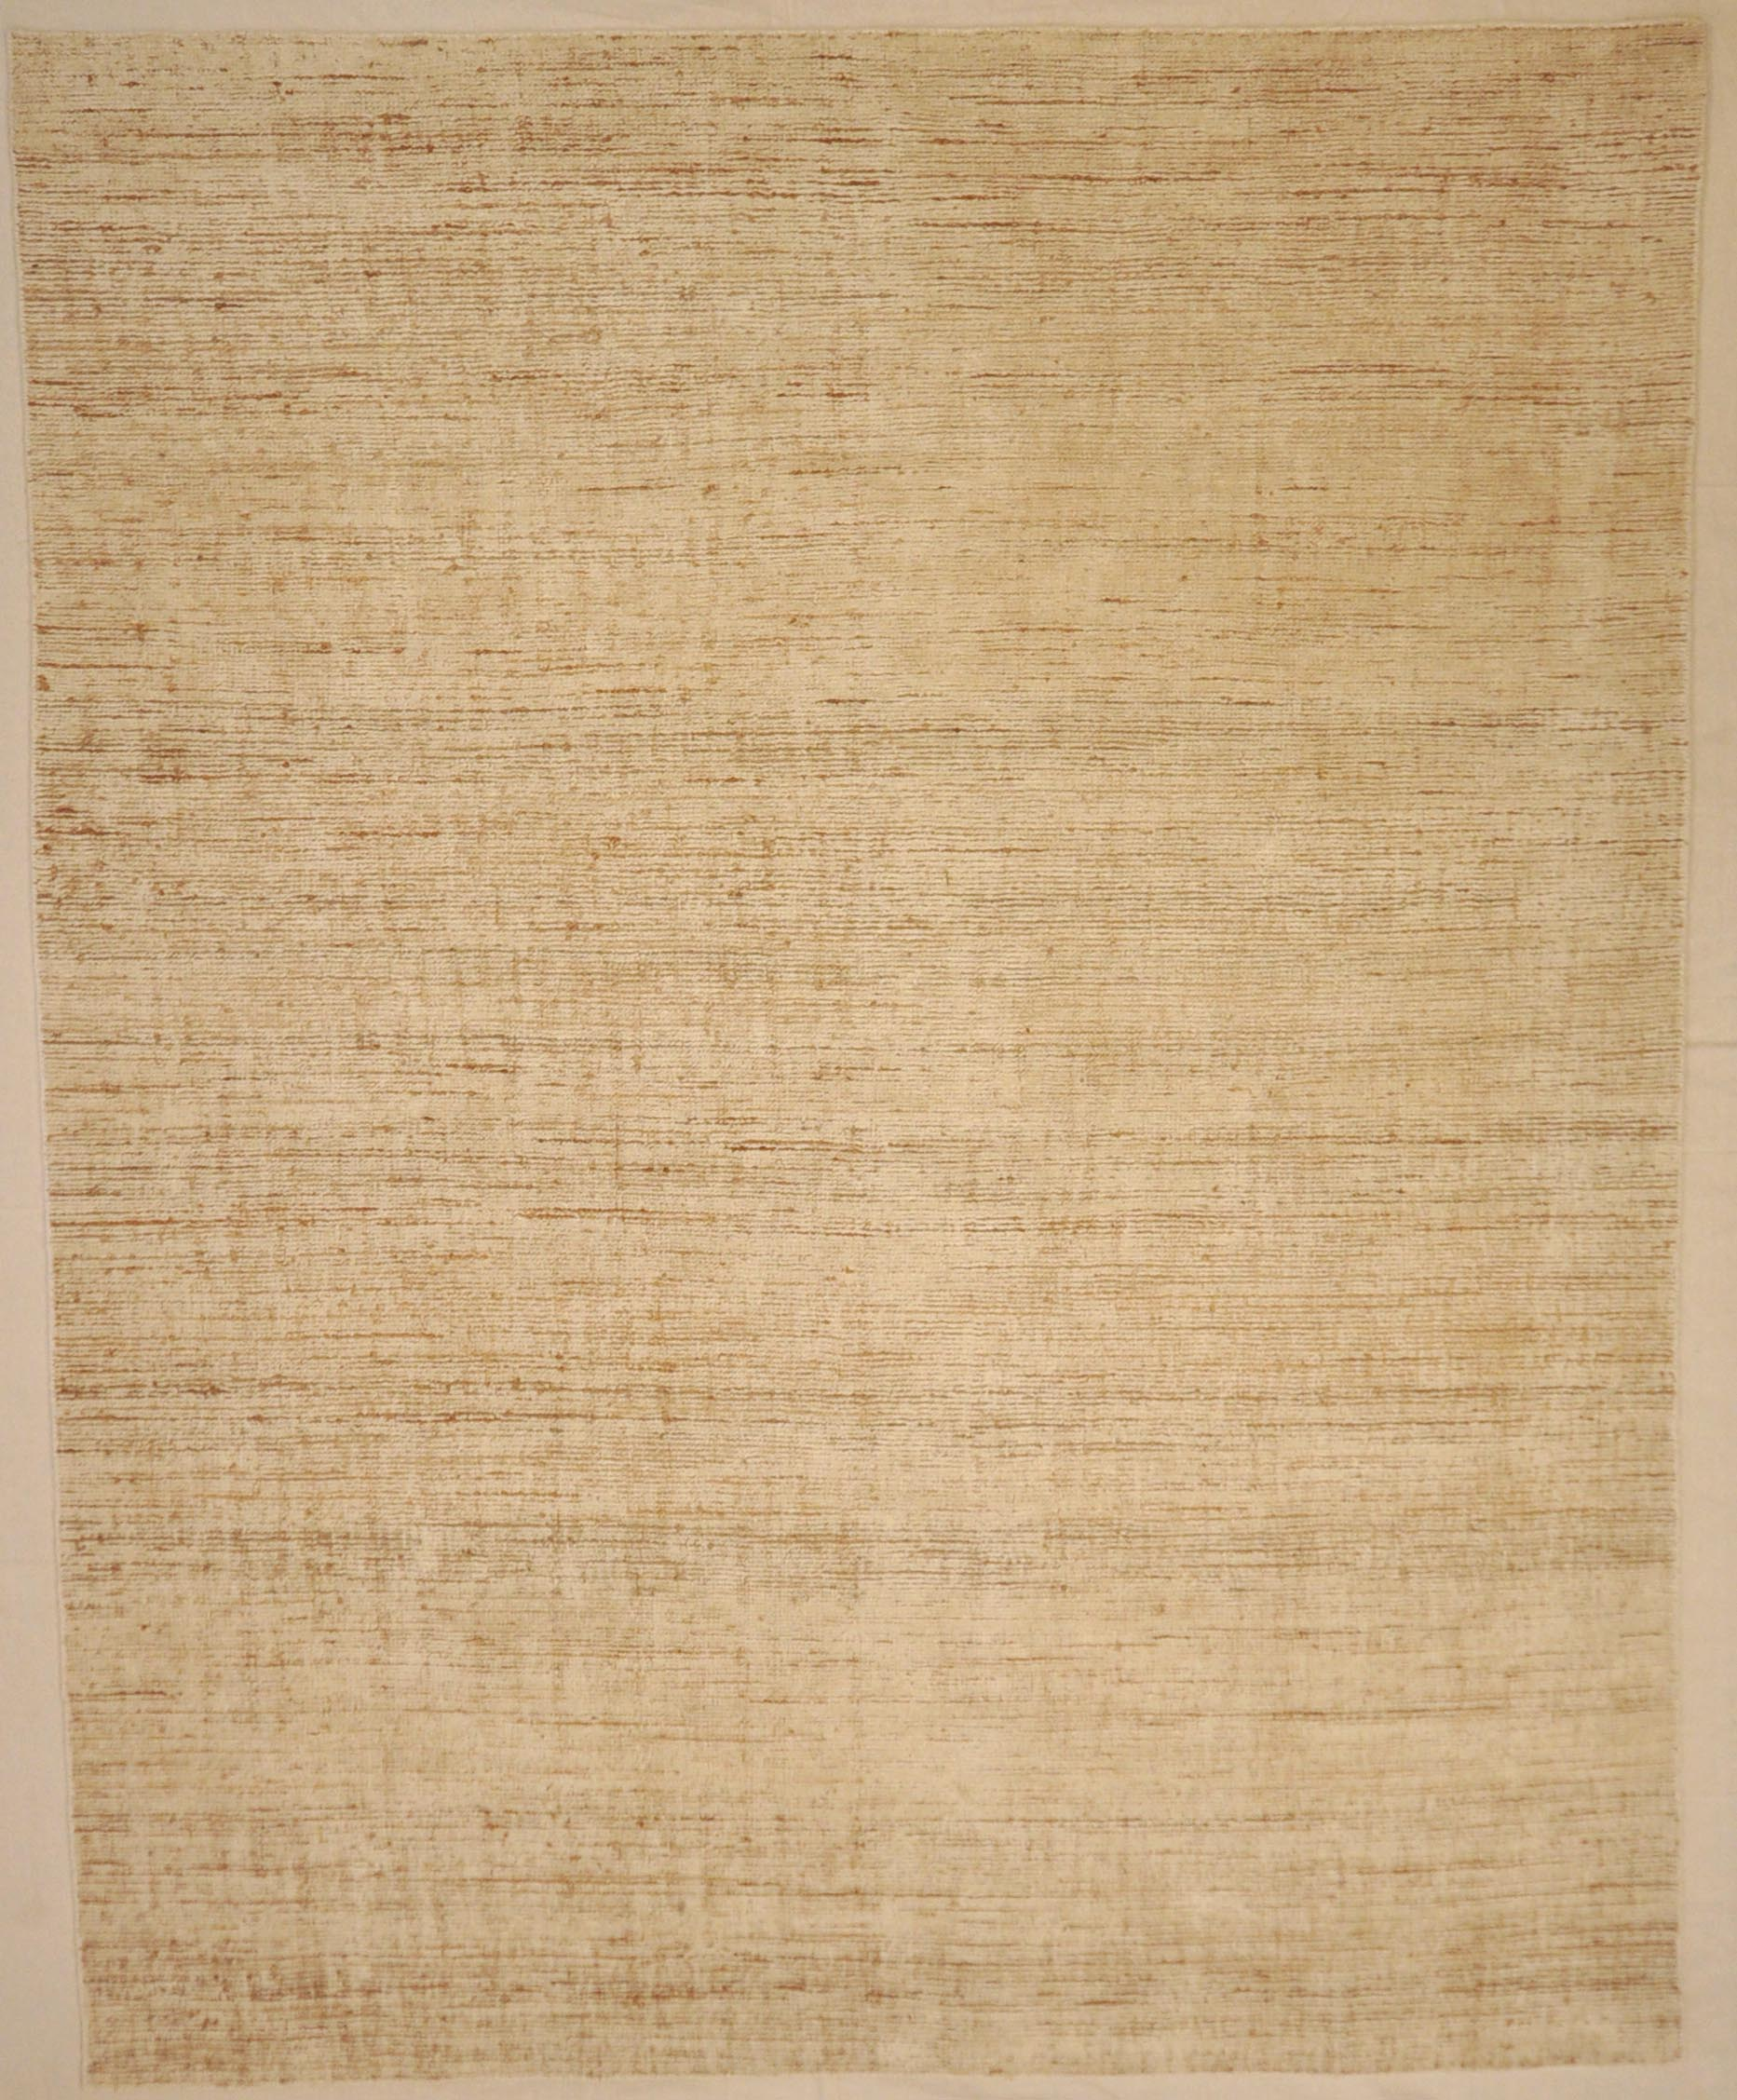 Jute Linen Rug | Rugs & More | Santa Barbara Design Center 32665